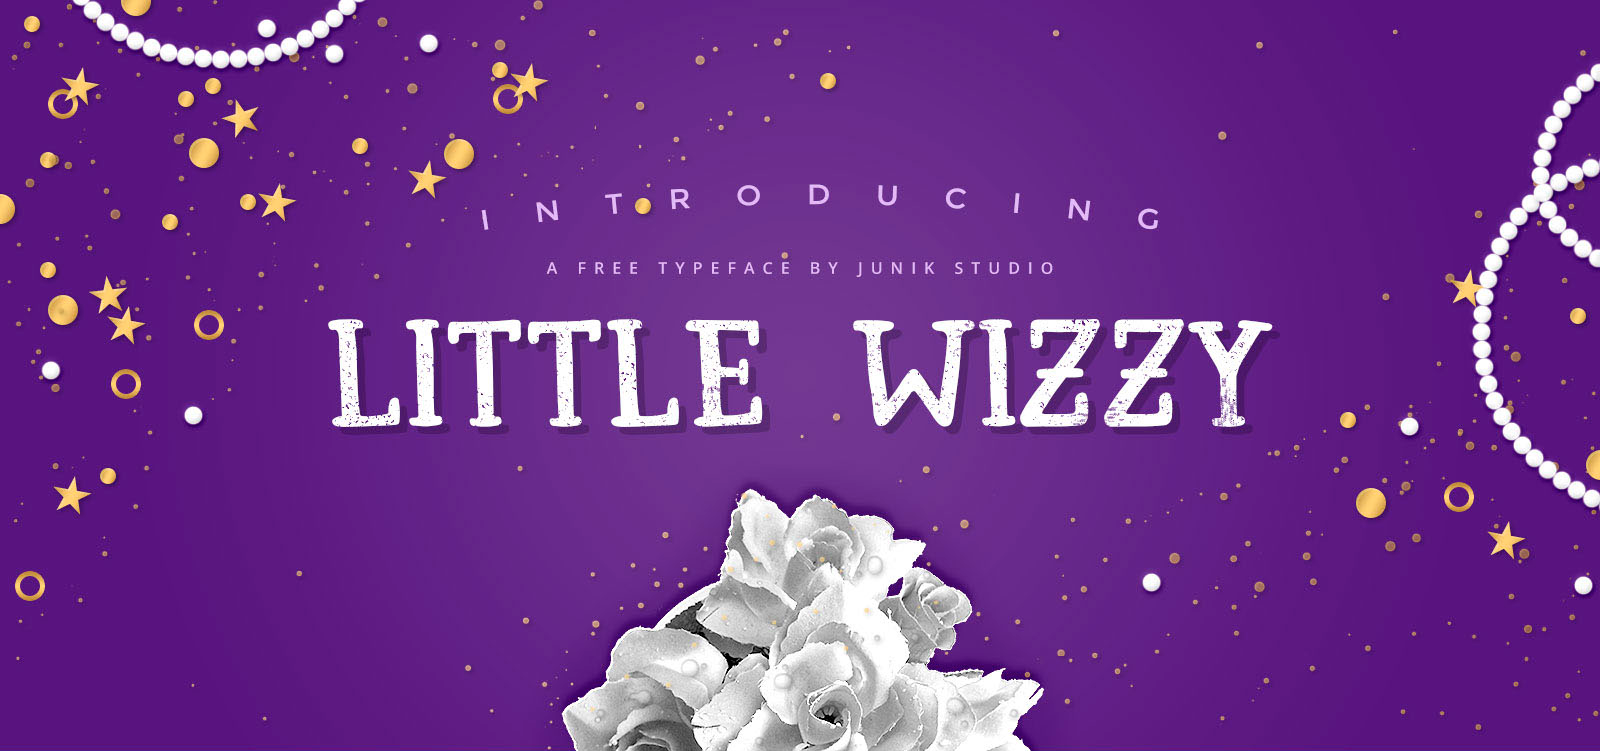 Шрифт Little Wizzy